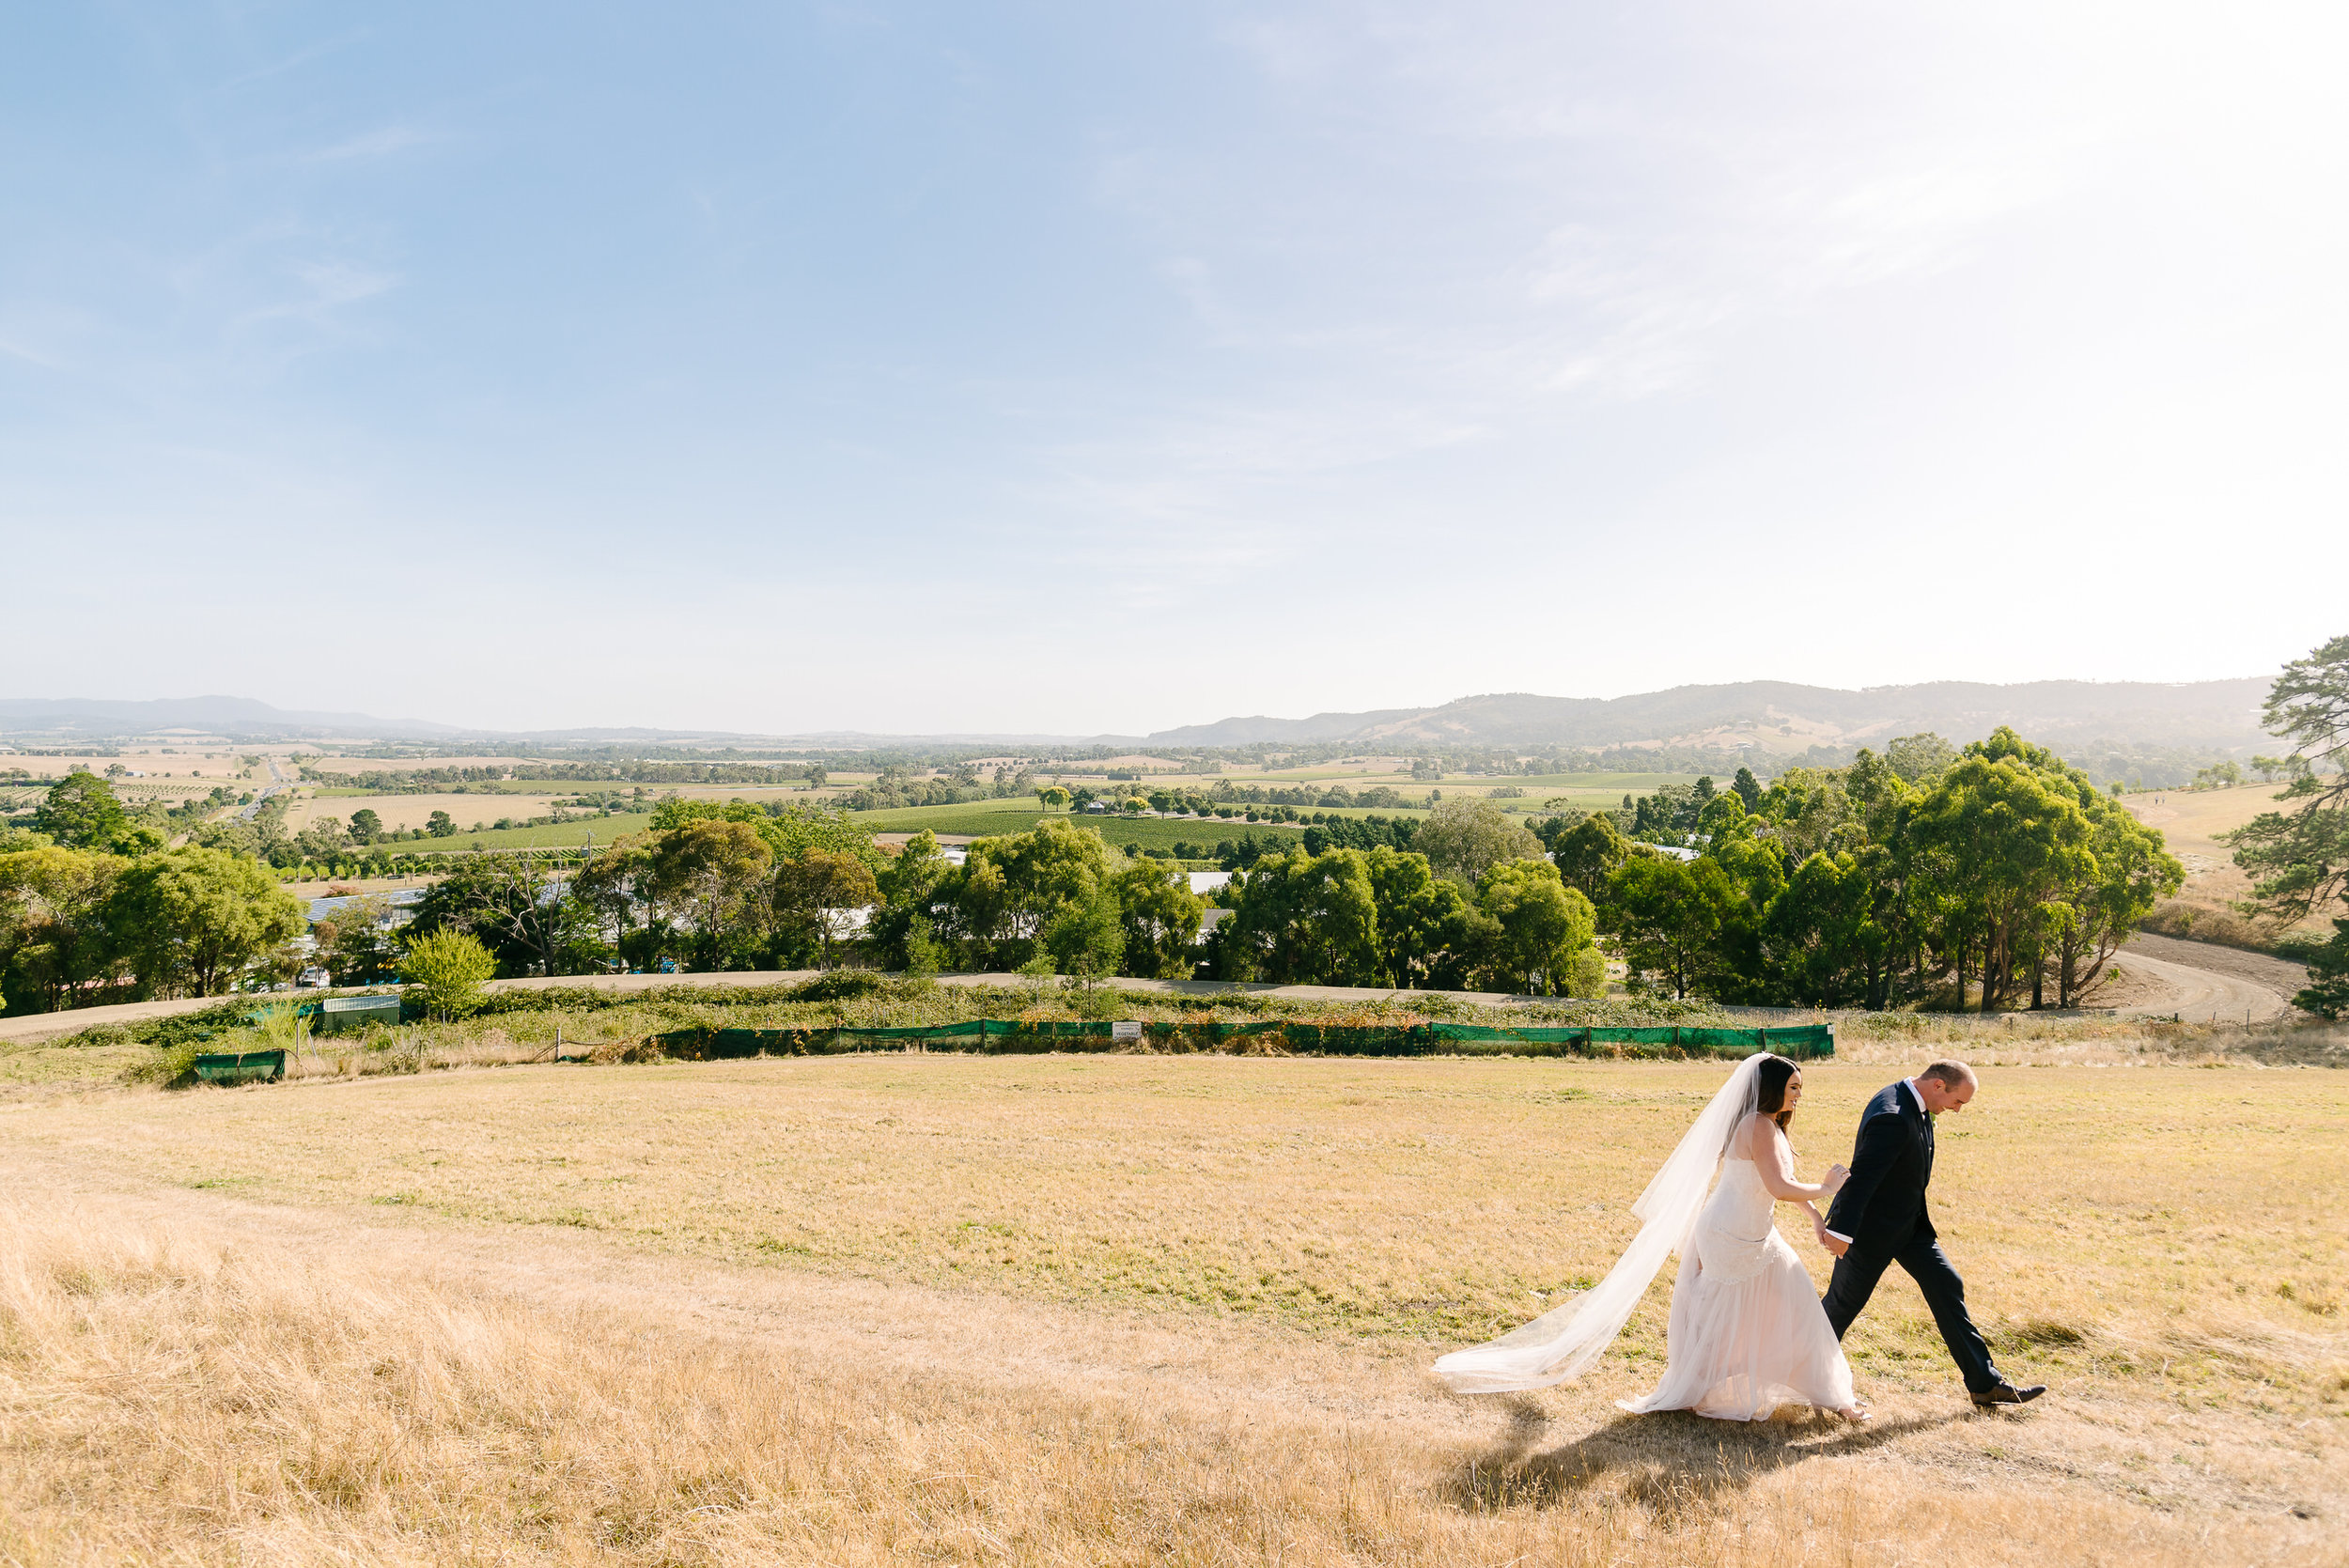 Justin_And_Jim_Photography_Balgownie_Winery_Wedding38.JPG